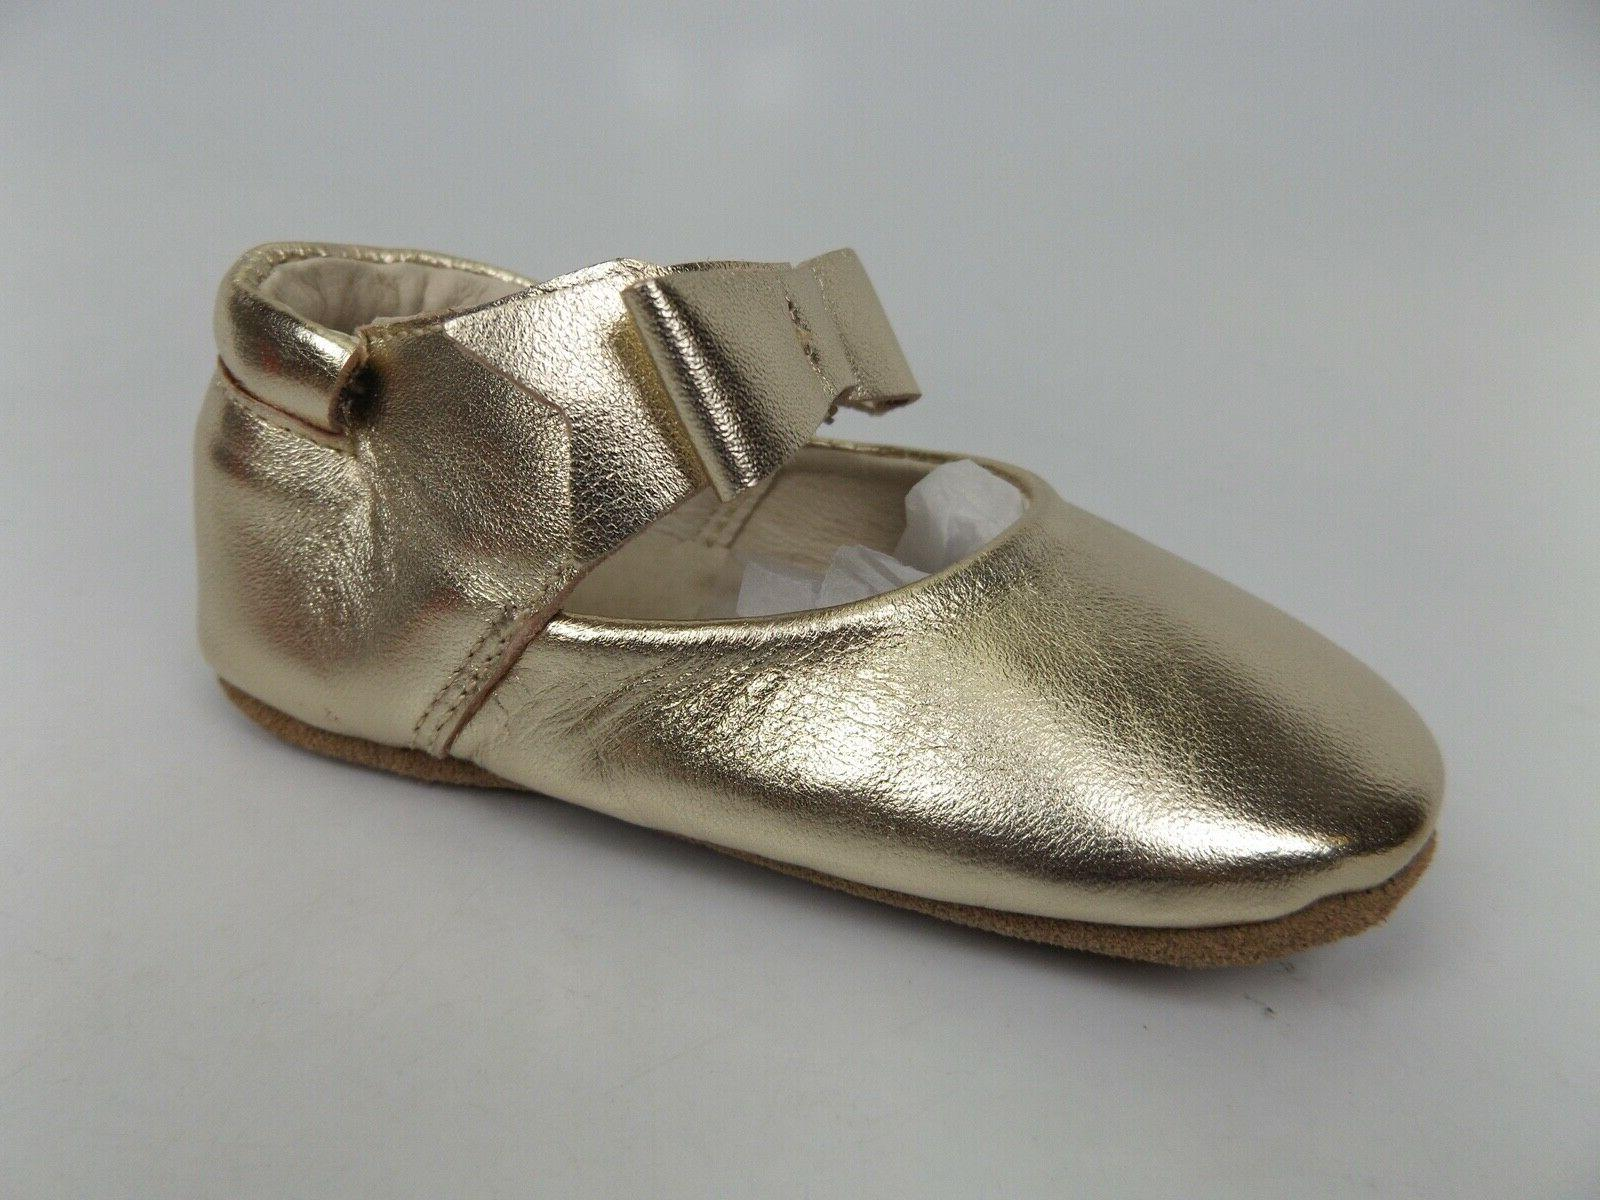 NEW! First Kicks Sophia Gold Soft Sole Leather Shoes SZ 12-18 Months